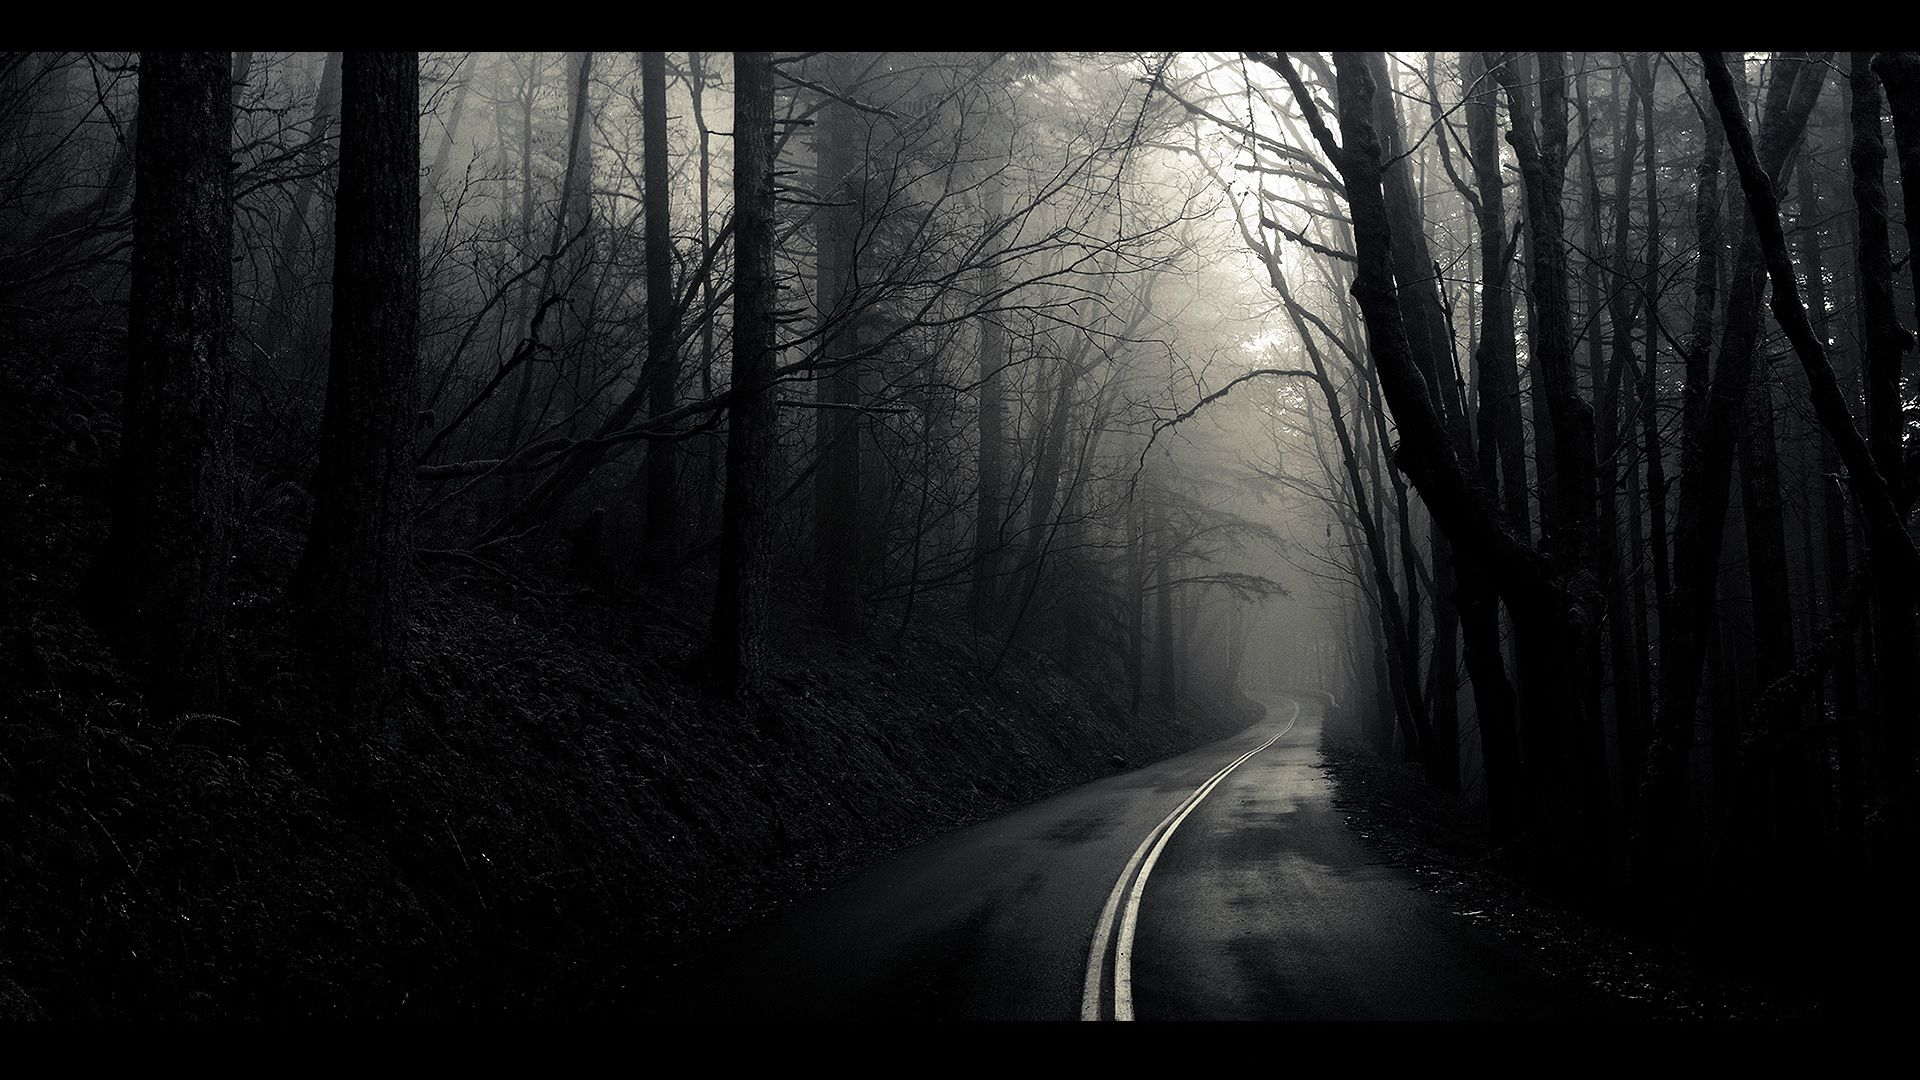 Road Forest Trees Black And White Hd Wallpaper Desktop